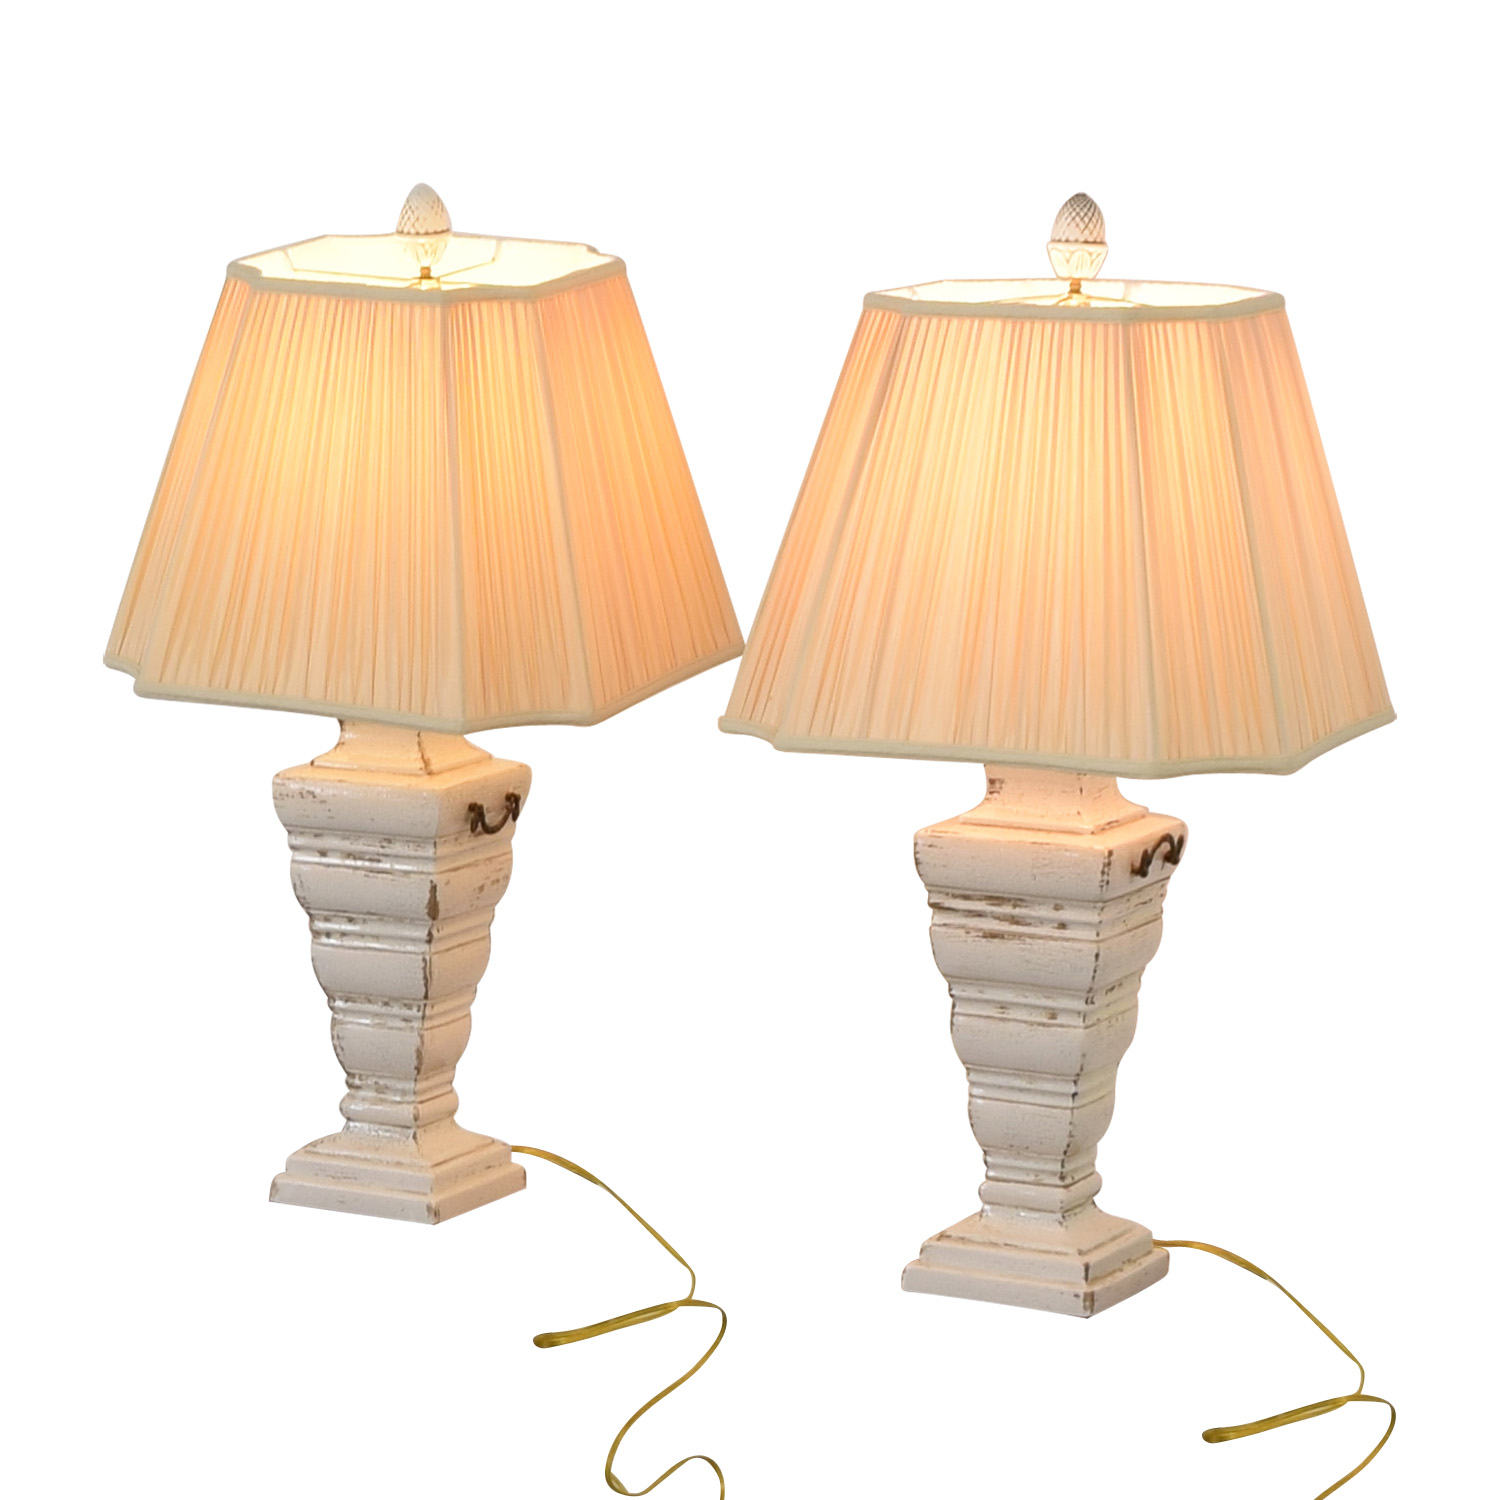 The Bradburn Gallery The Bradburn Gallery Cream Table Lamps white and cream